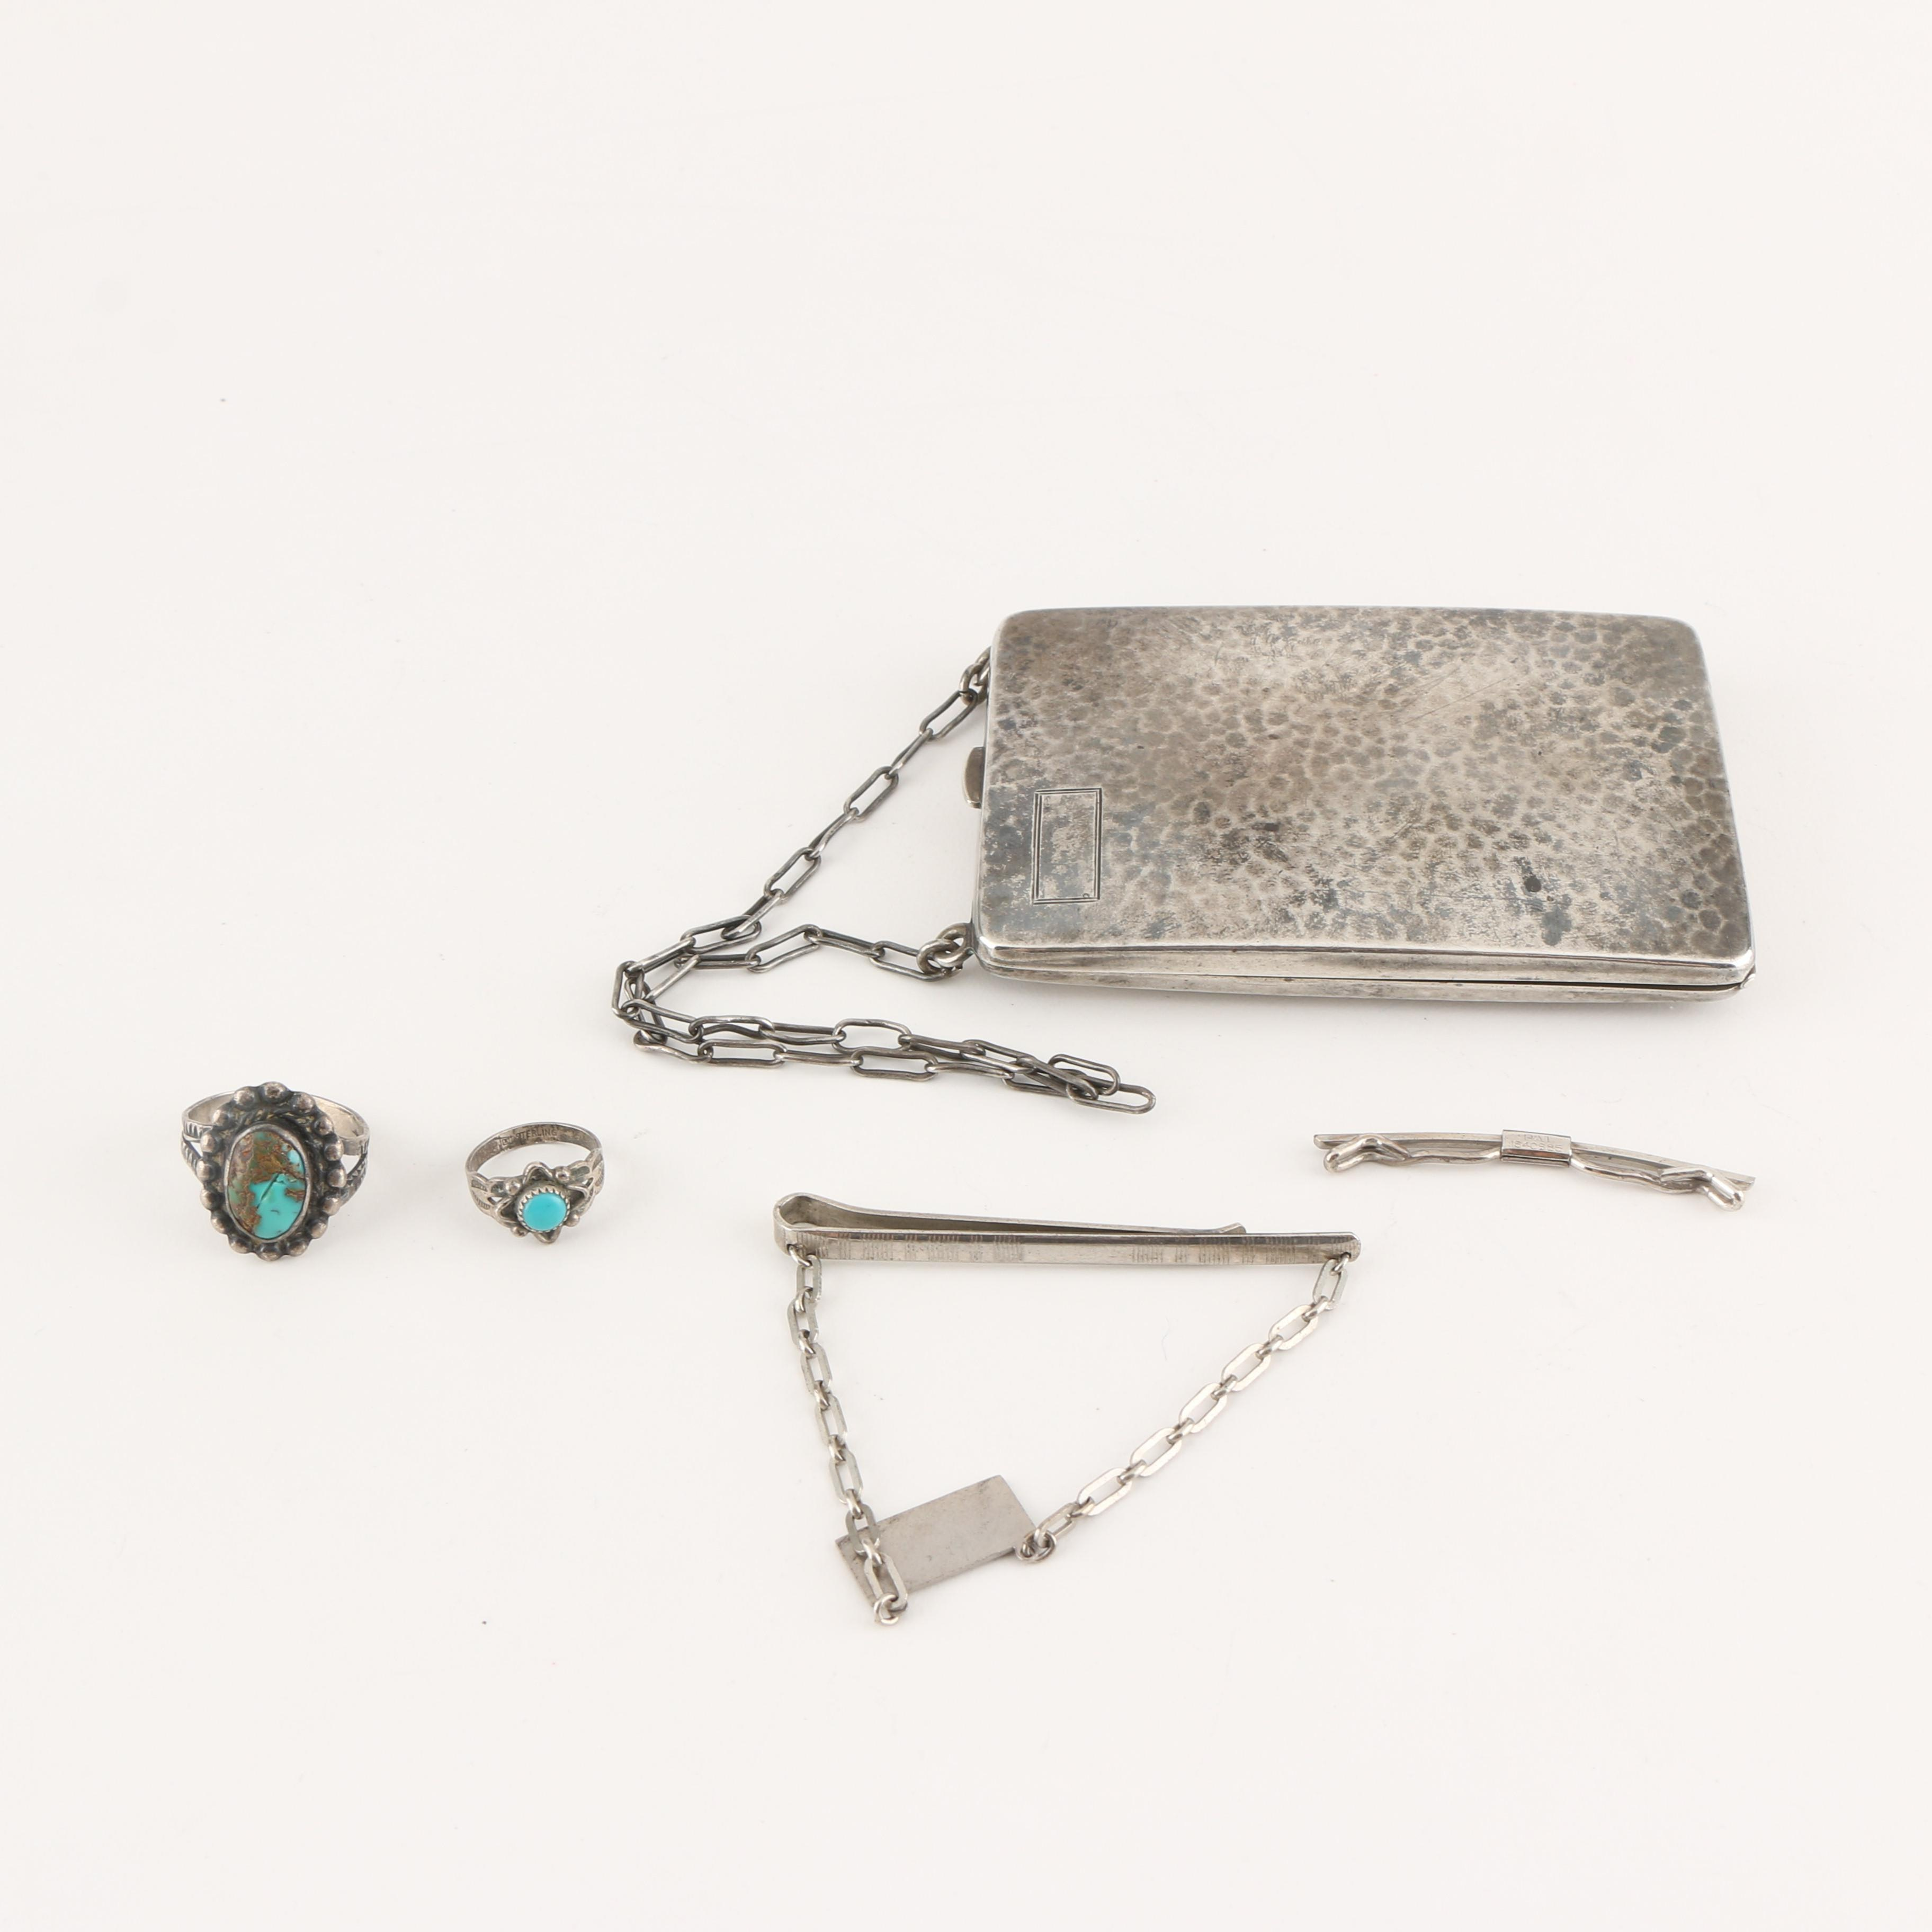 Sterling Silver Jewelry Assortment Featuring Vintage Coin Purse